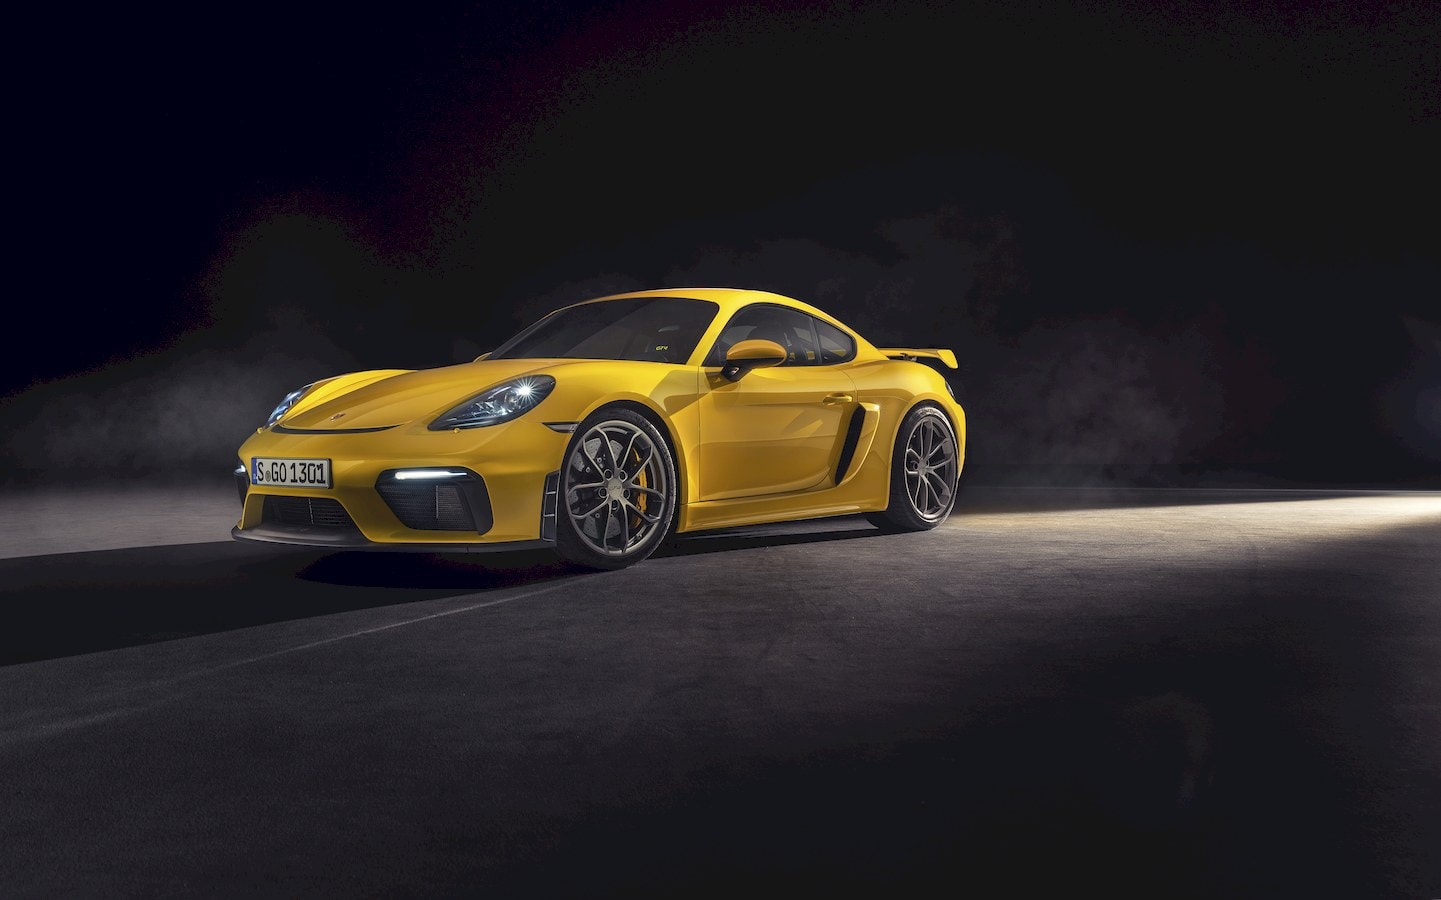 The new Porsche 718 Spyder and Cayman GT4 natural-aspirated engines pack more punch than before